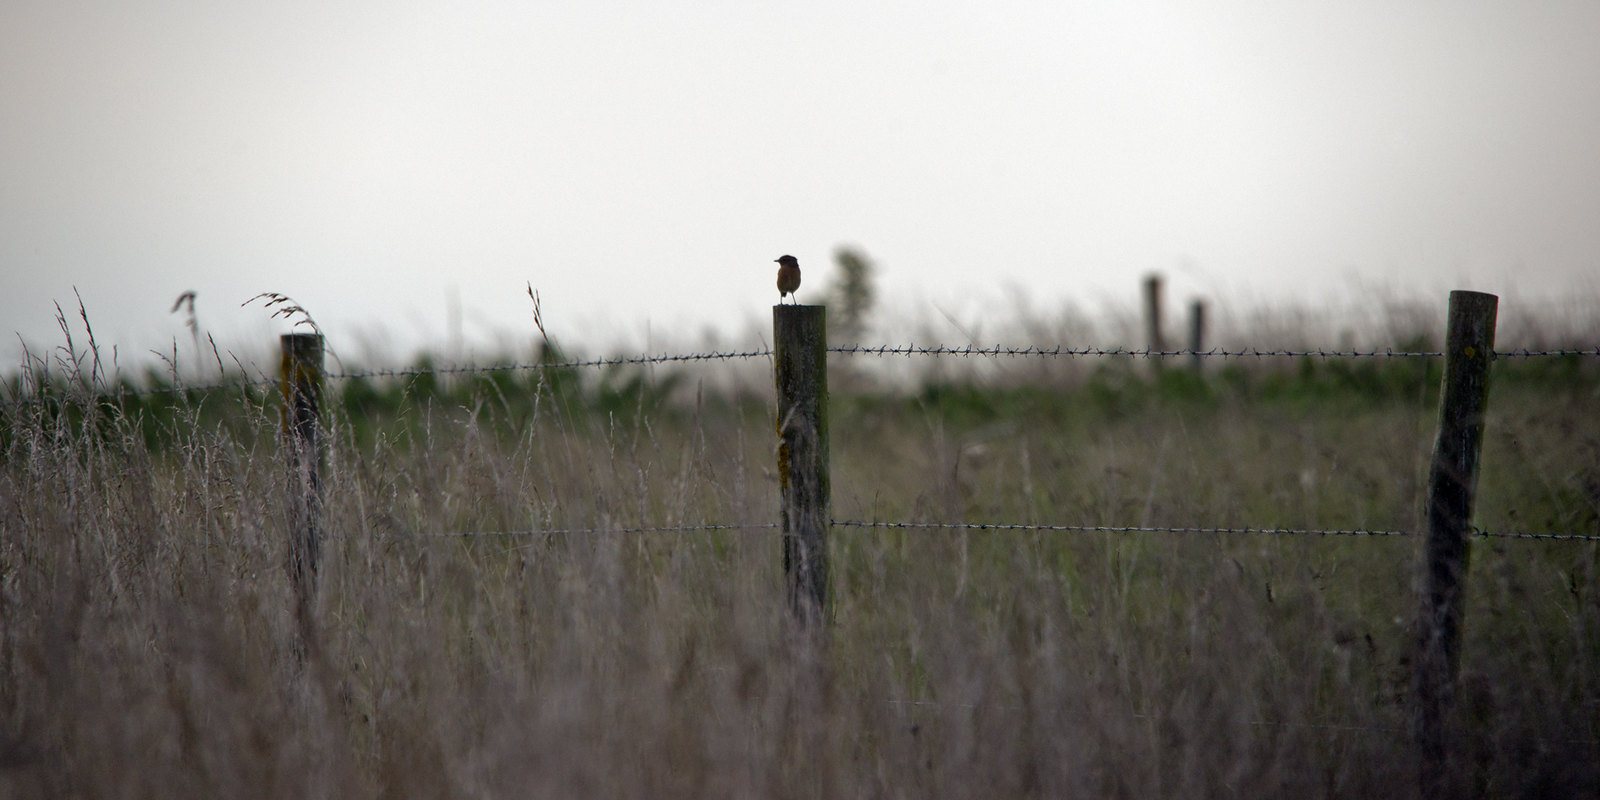 A male stonechat on a fencepost